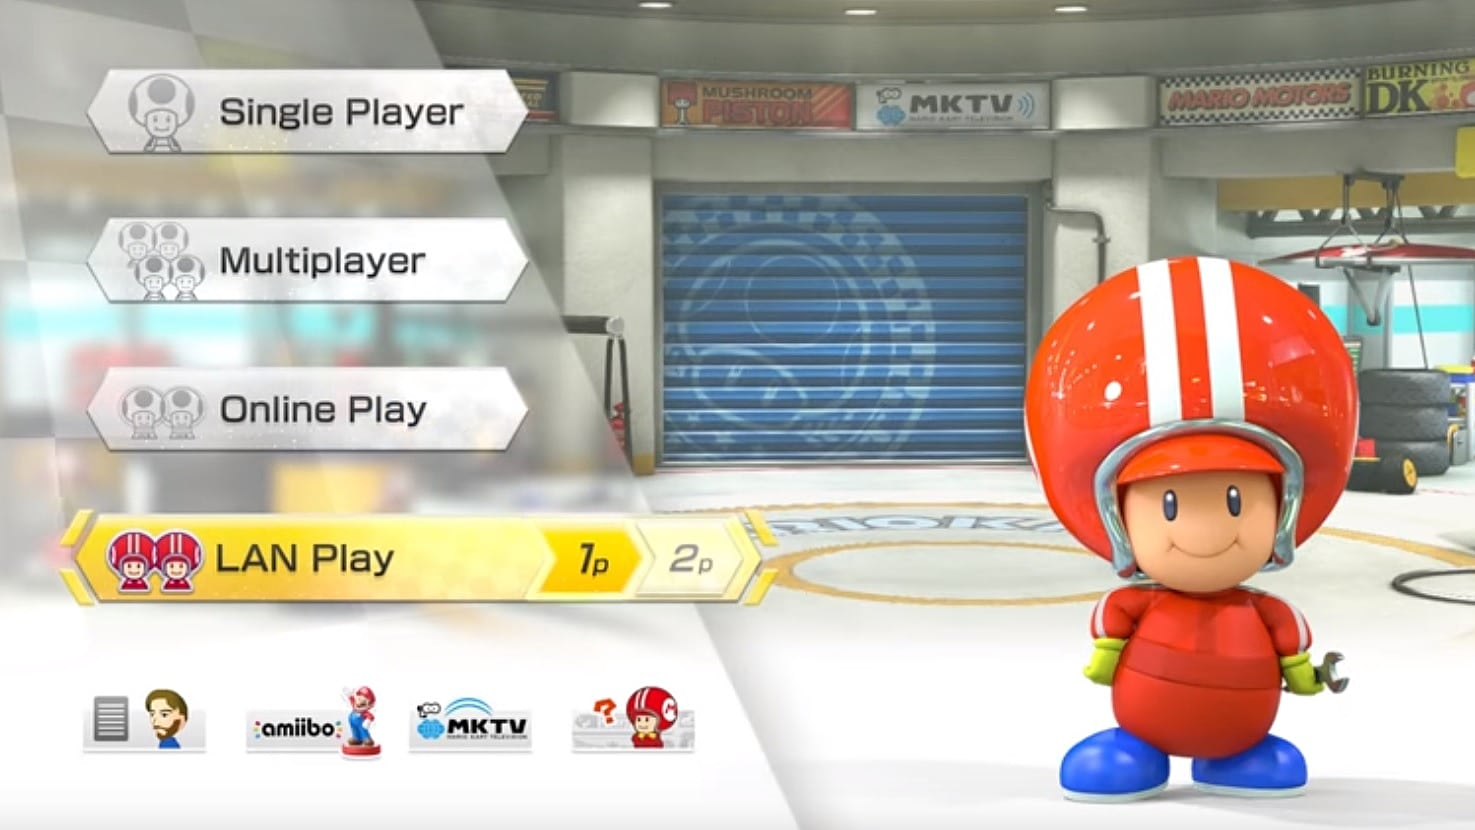 How to set up your own Mario Kart 8 Deluxe LAN Party